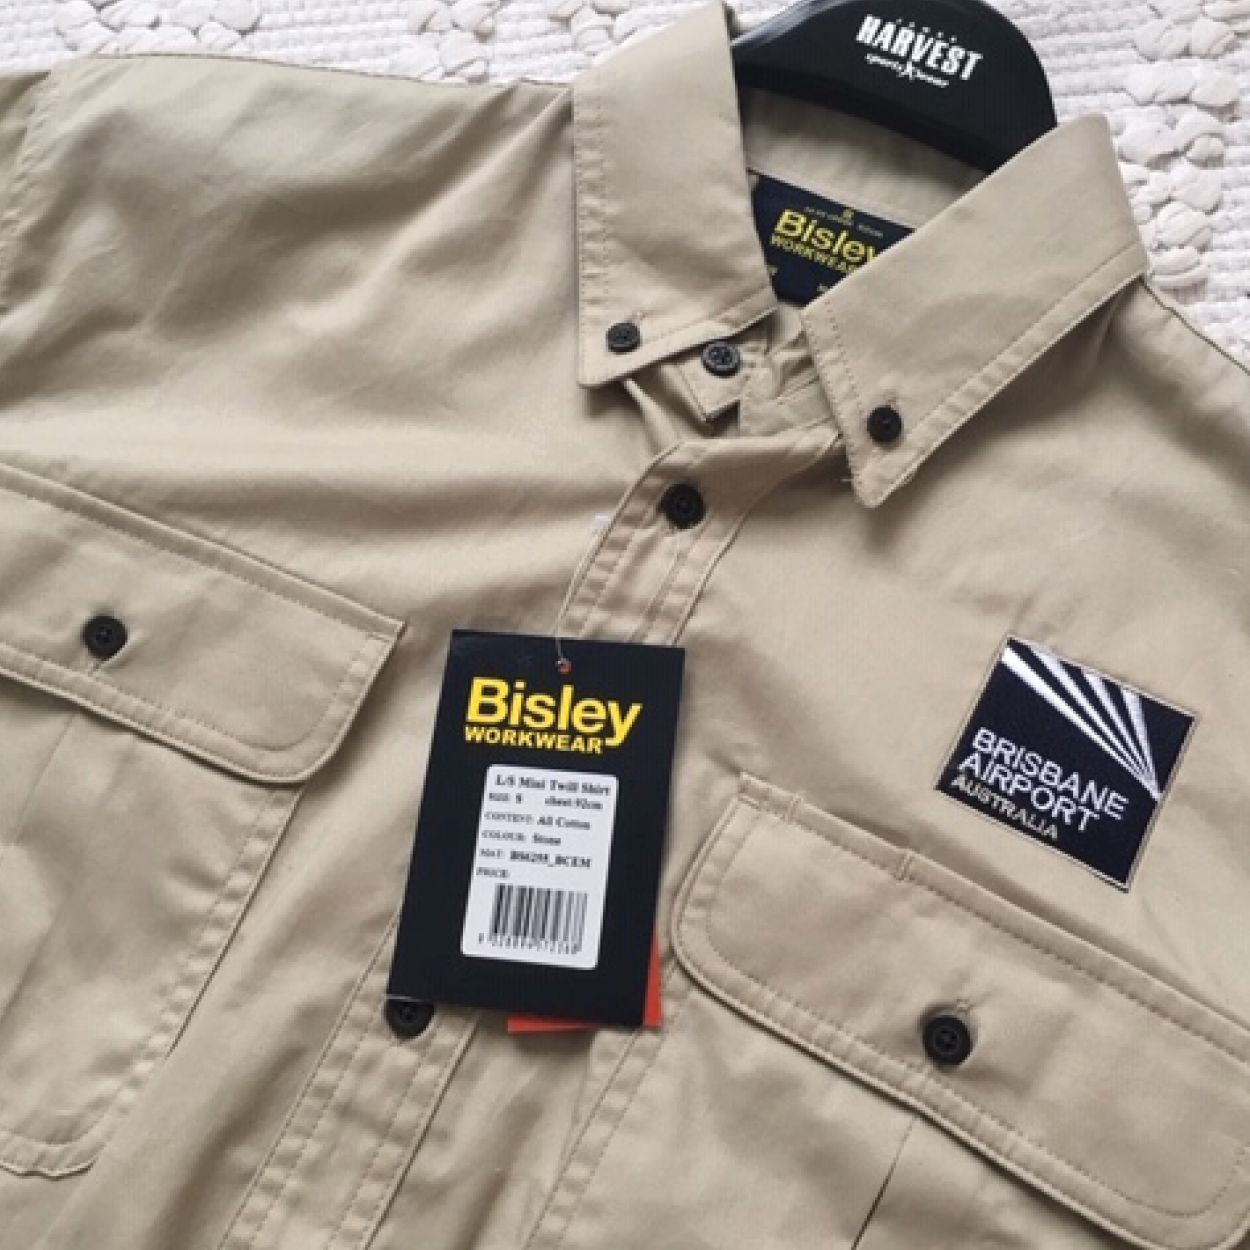 ff0346ff7a5b Bisley mini twill long sleeved work shirts complete with custom logo  embroidery produced for our friends